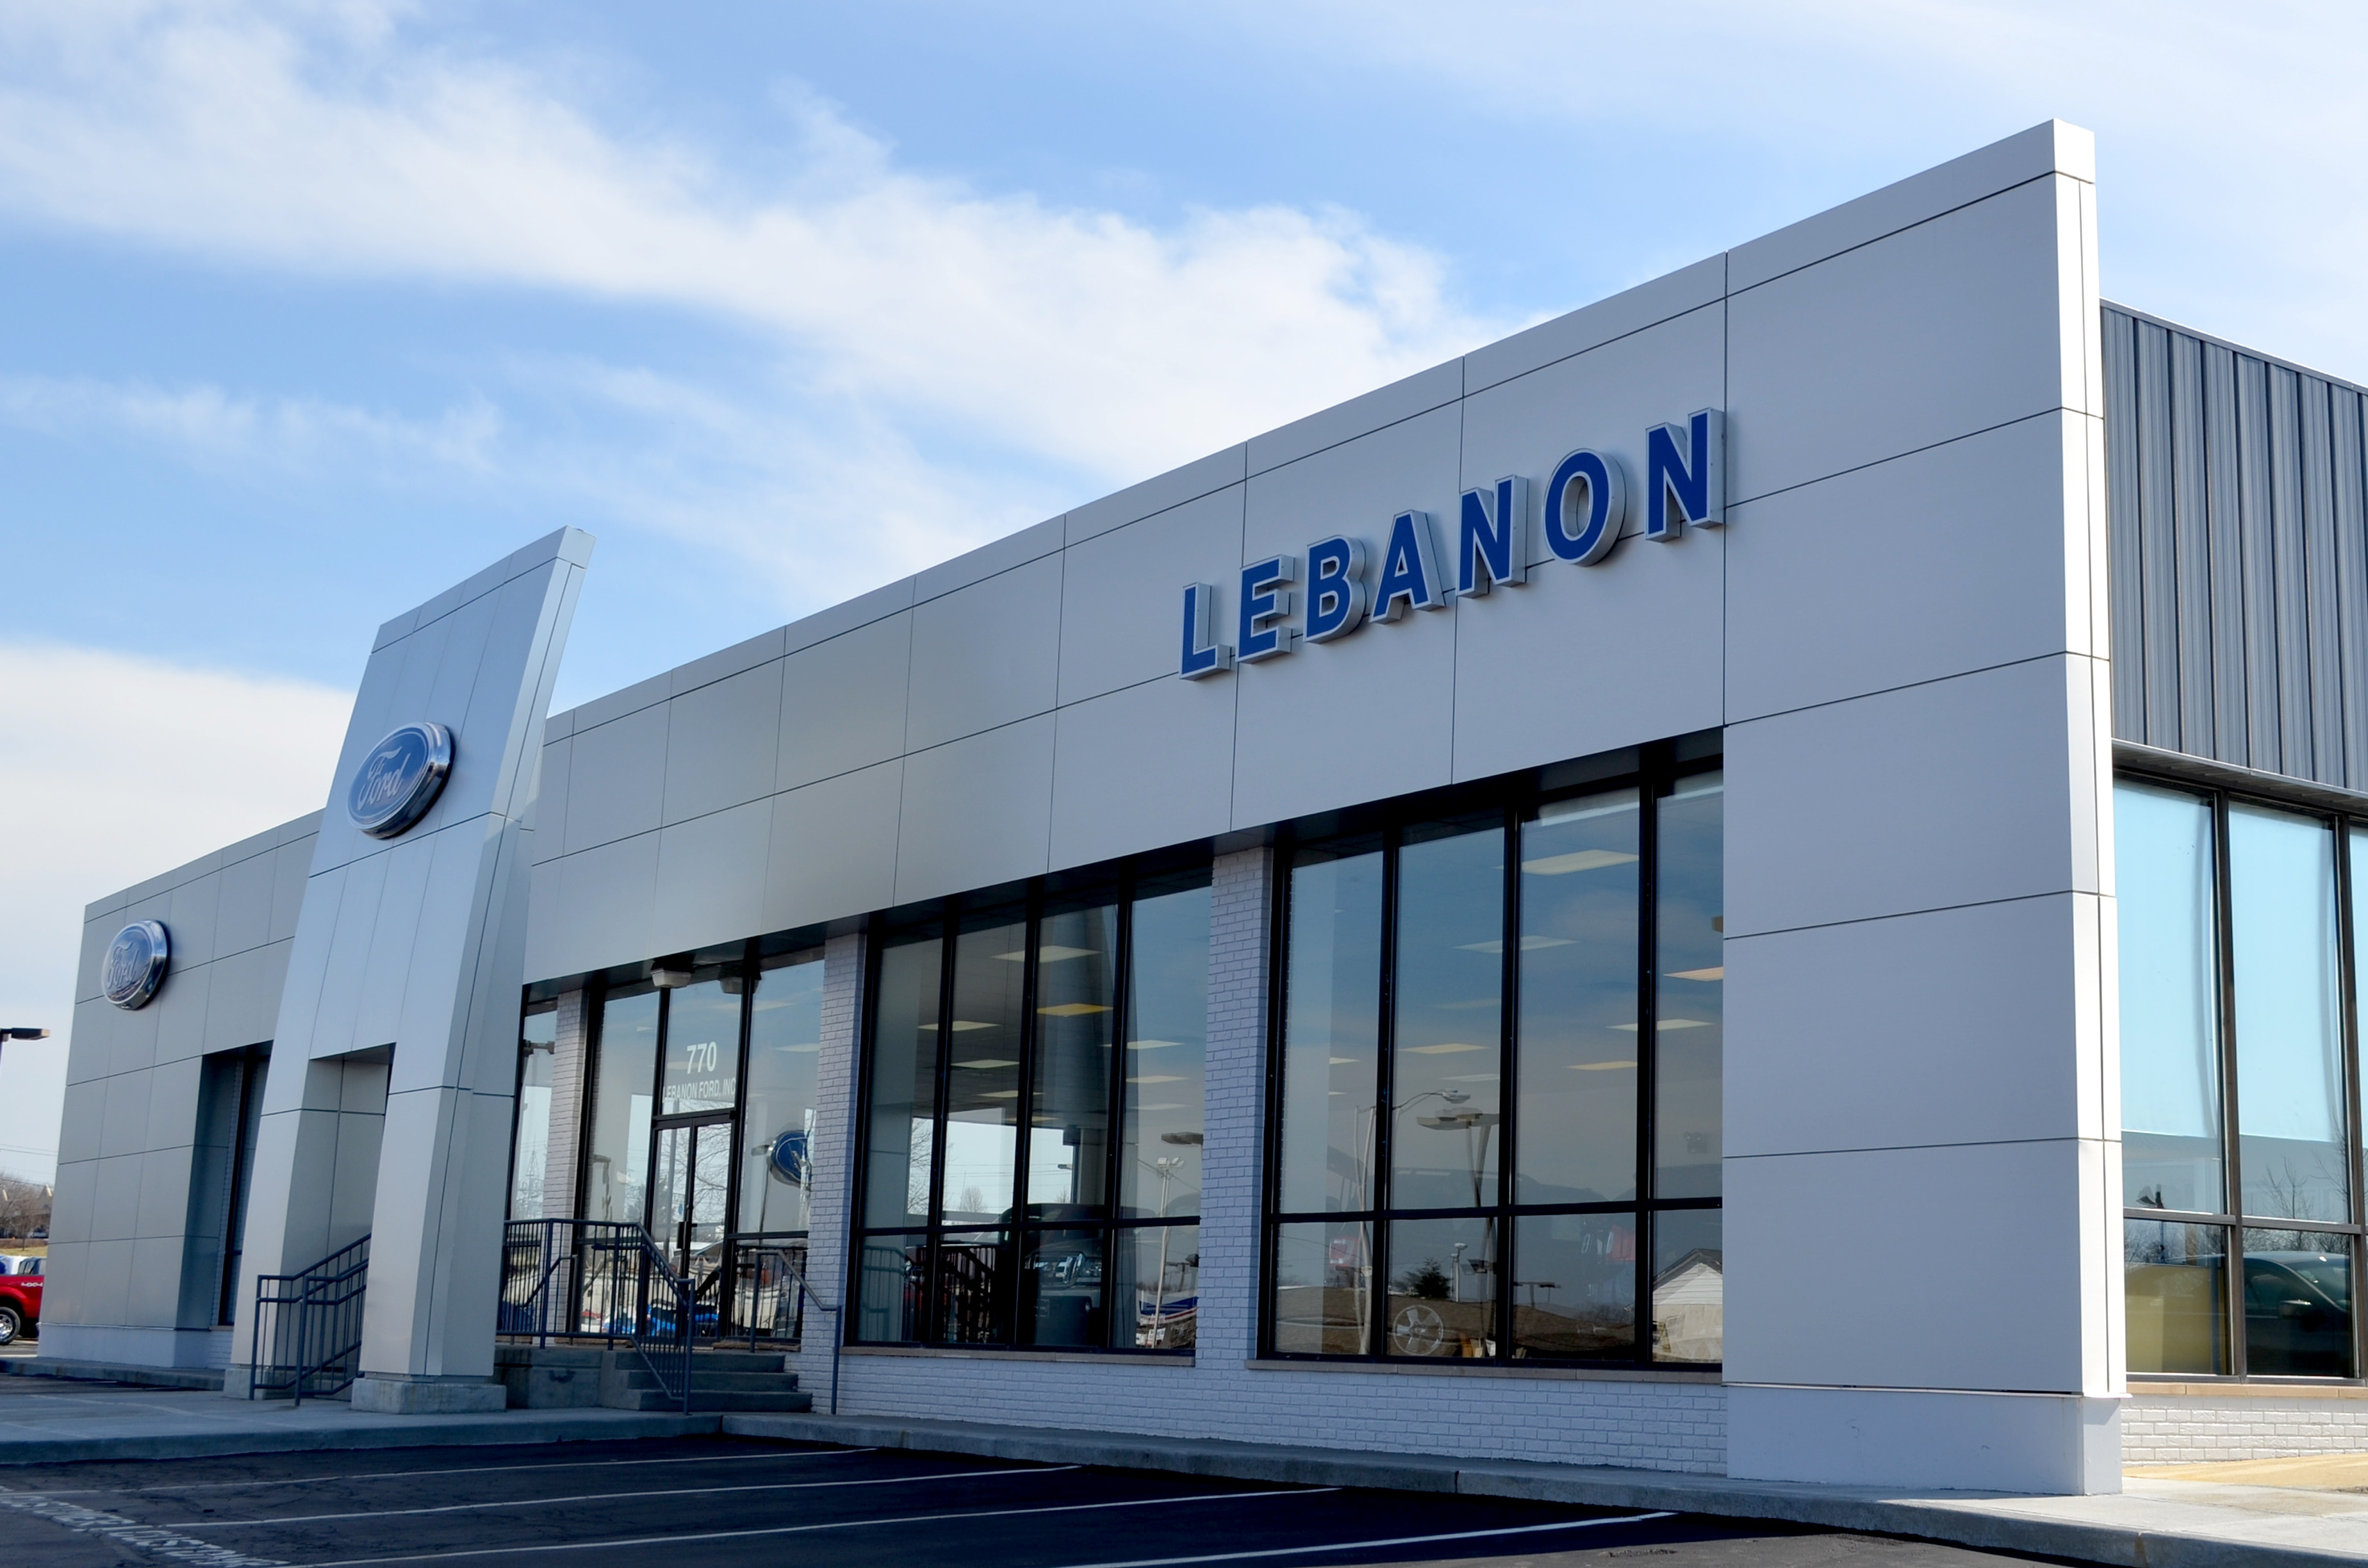 About Lebanon Ford